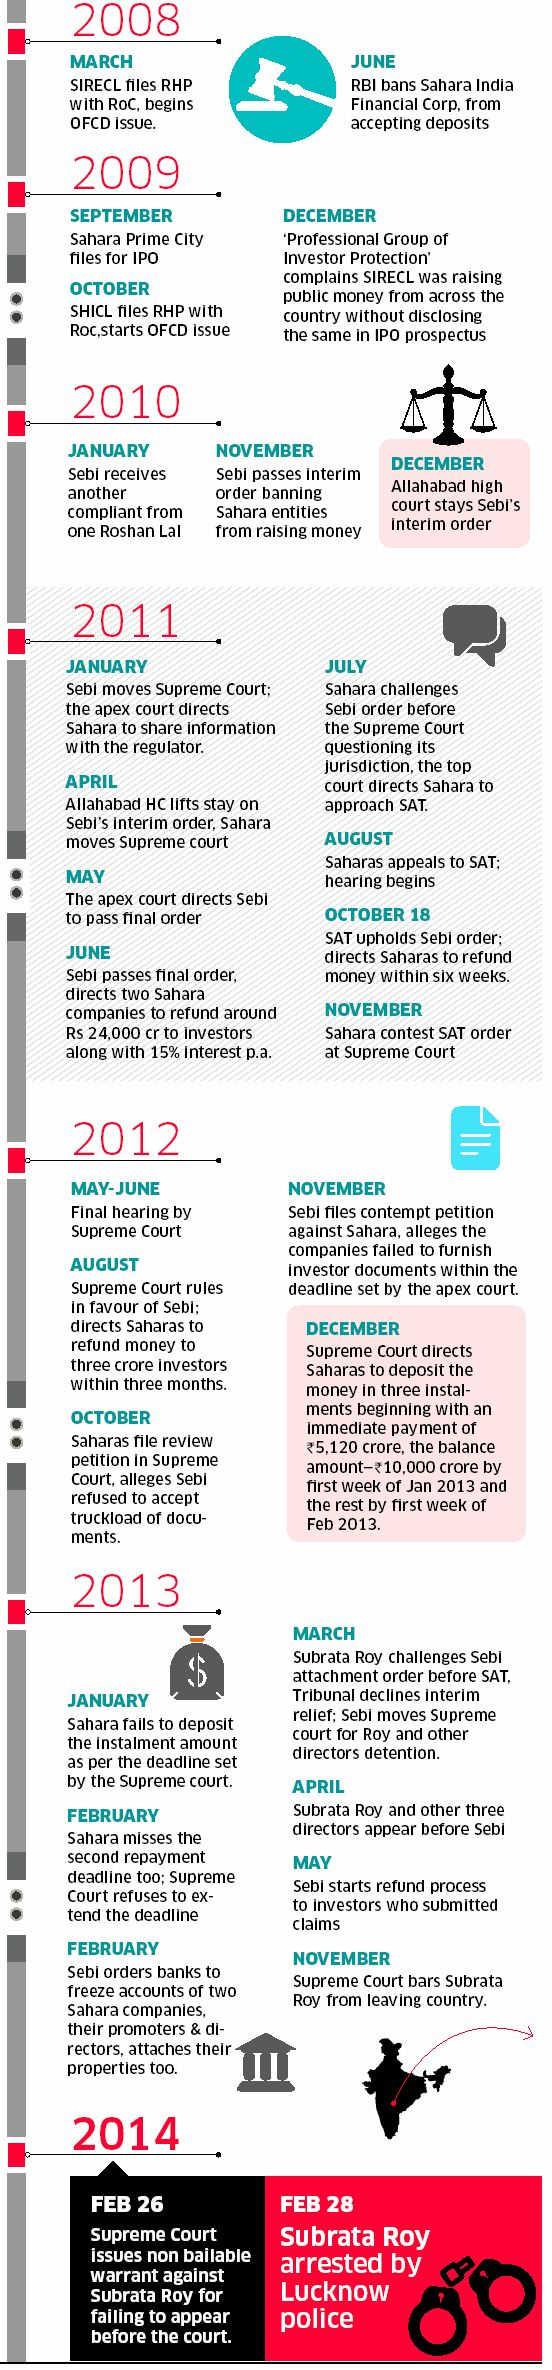 Timeline of SEBI Sahara case